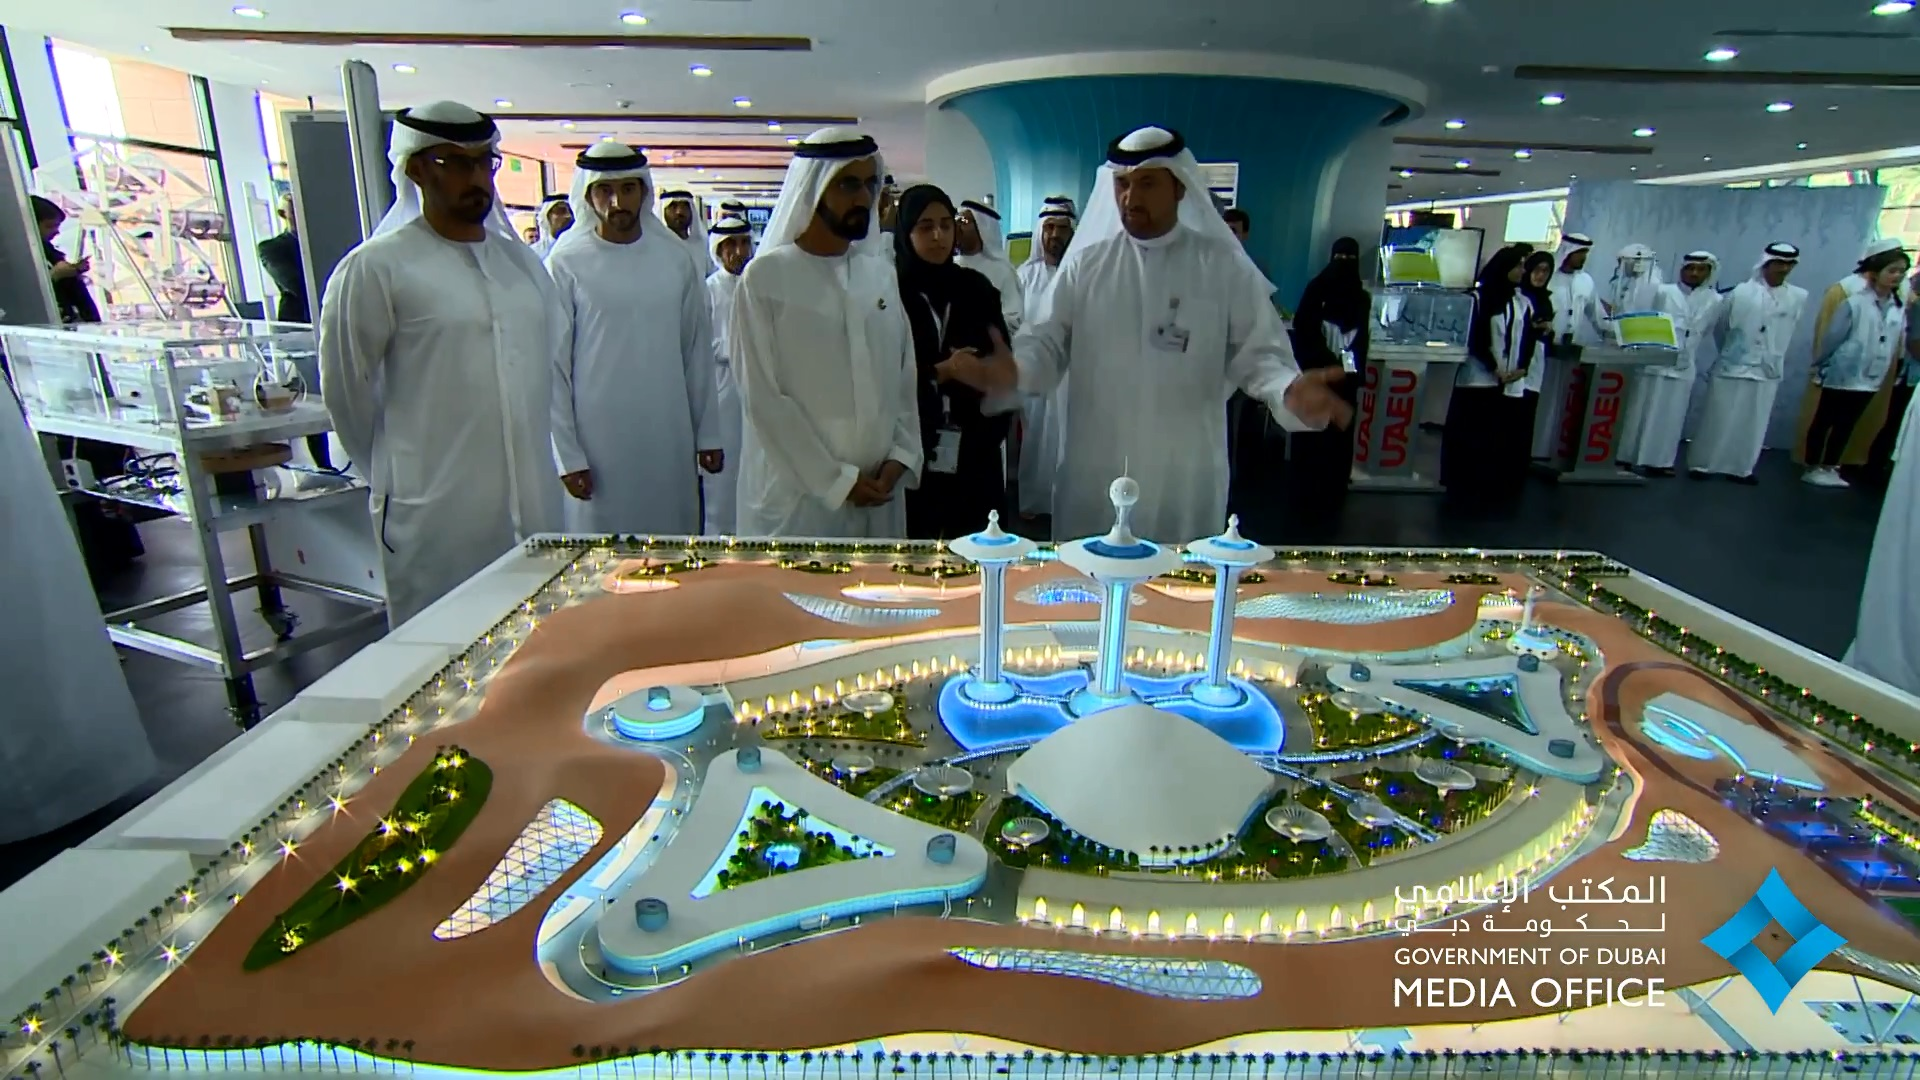 3G's UAEU Design of the Science and Innovation Research Center